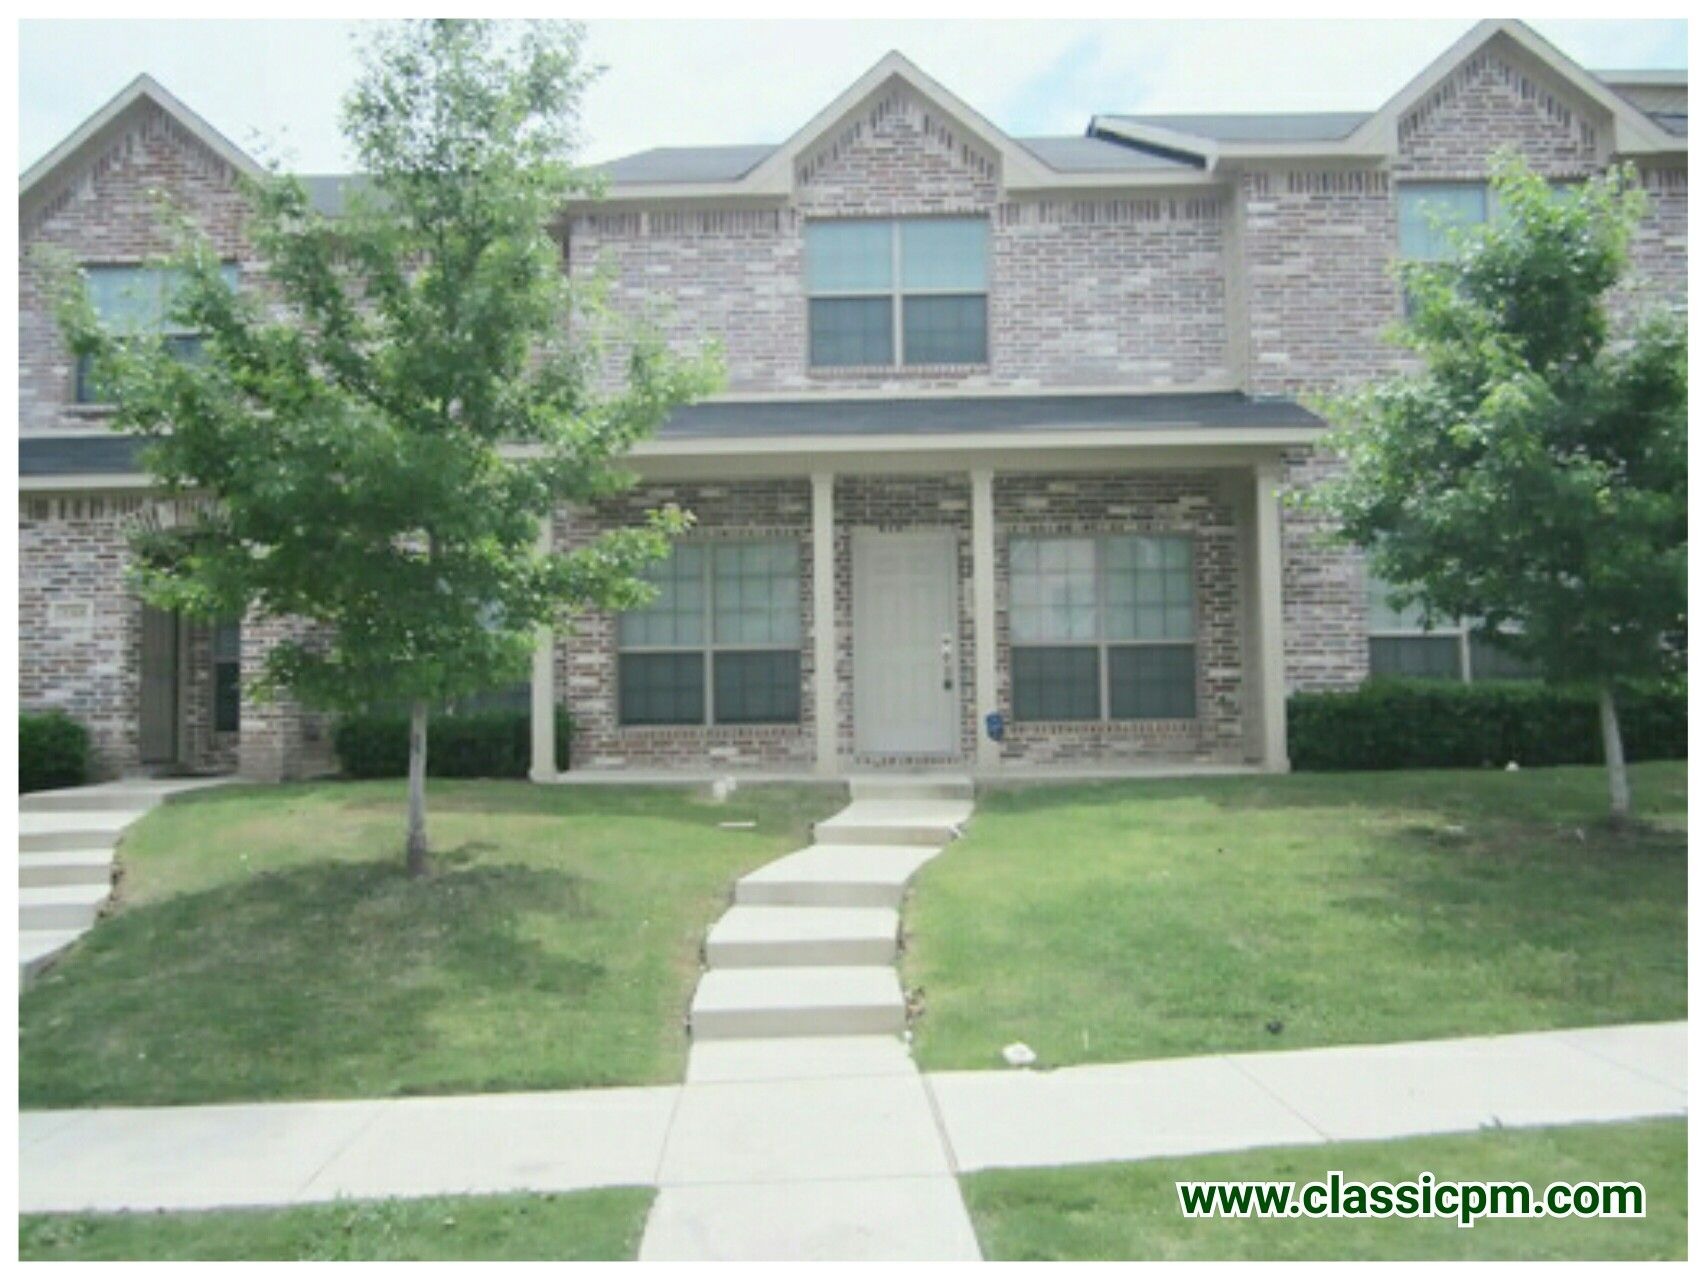 Photos And Video Of Sheffield Square In Grand Prairie Tx Renting A House Apartments For Rent Grand Prairie